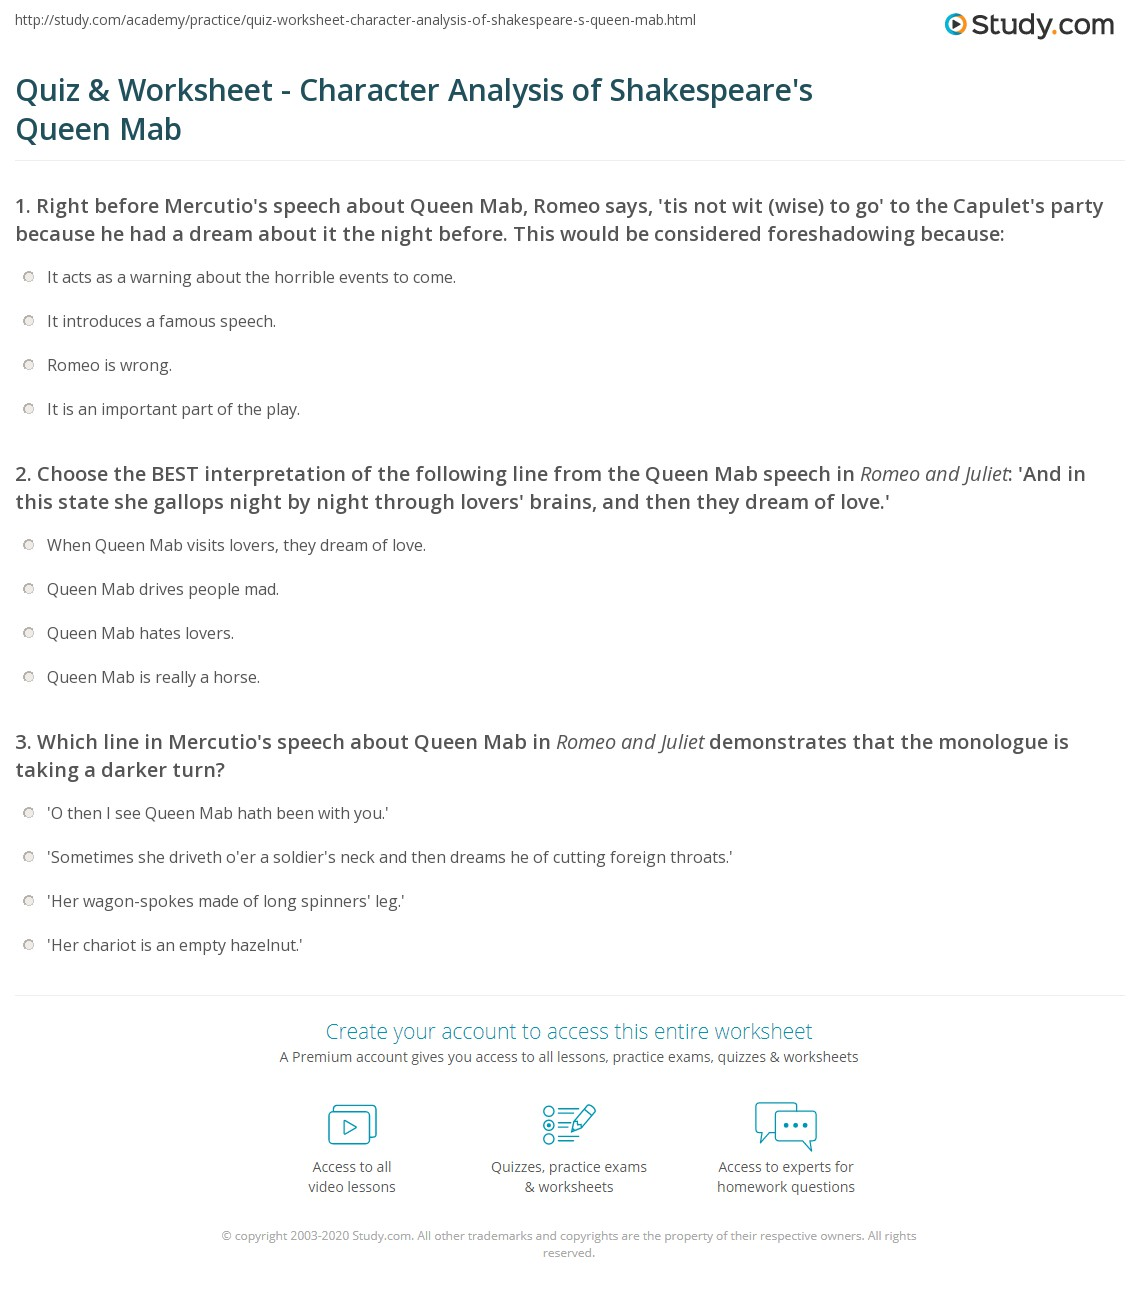 macbeth character analysis of Essay macbeth: character analysis of macbeth macbeth was a true shakespearean tragic hero he had many noble qualities as well as several tragic flaws he was.